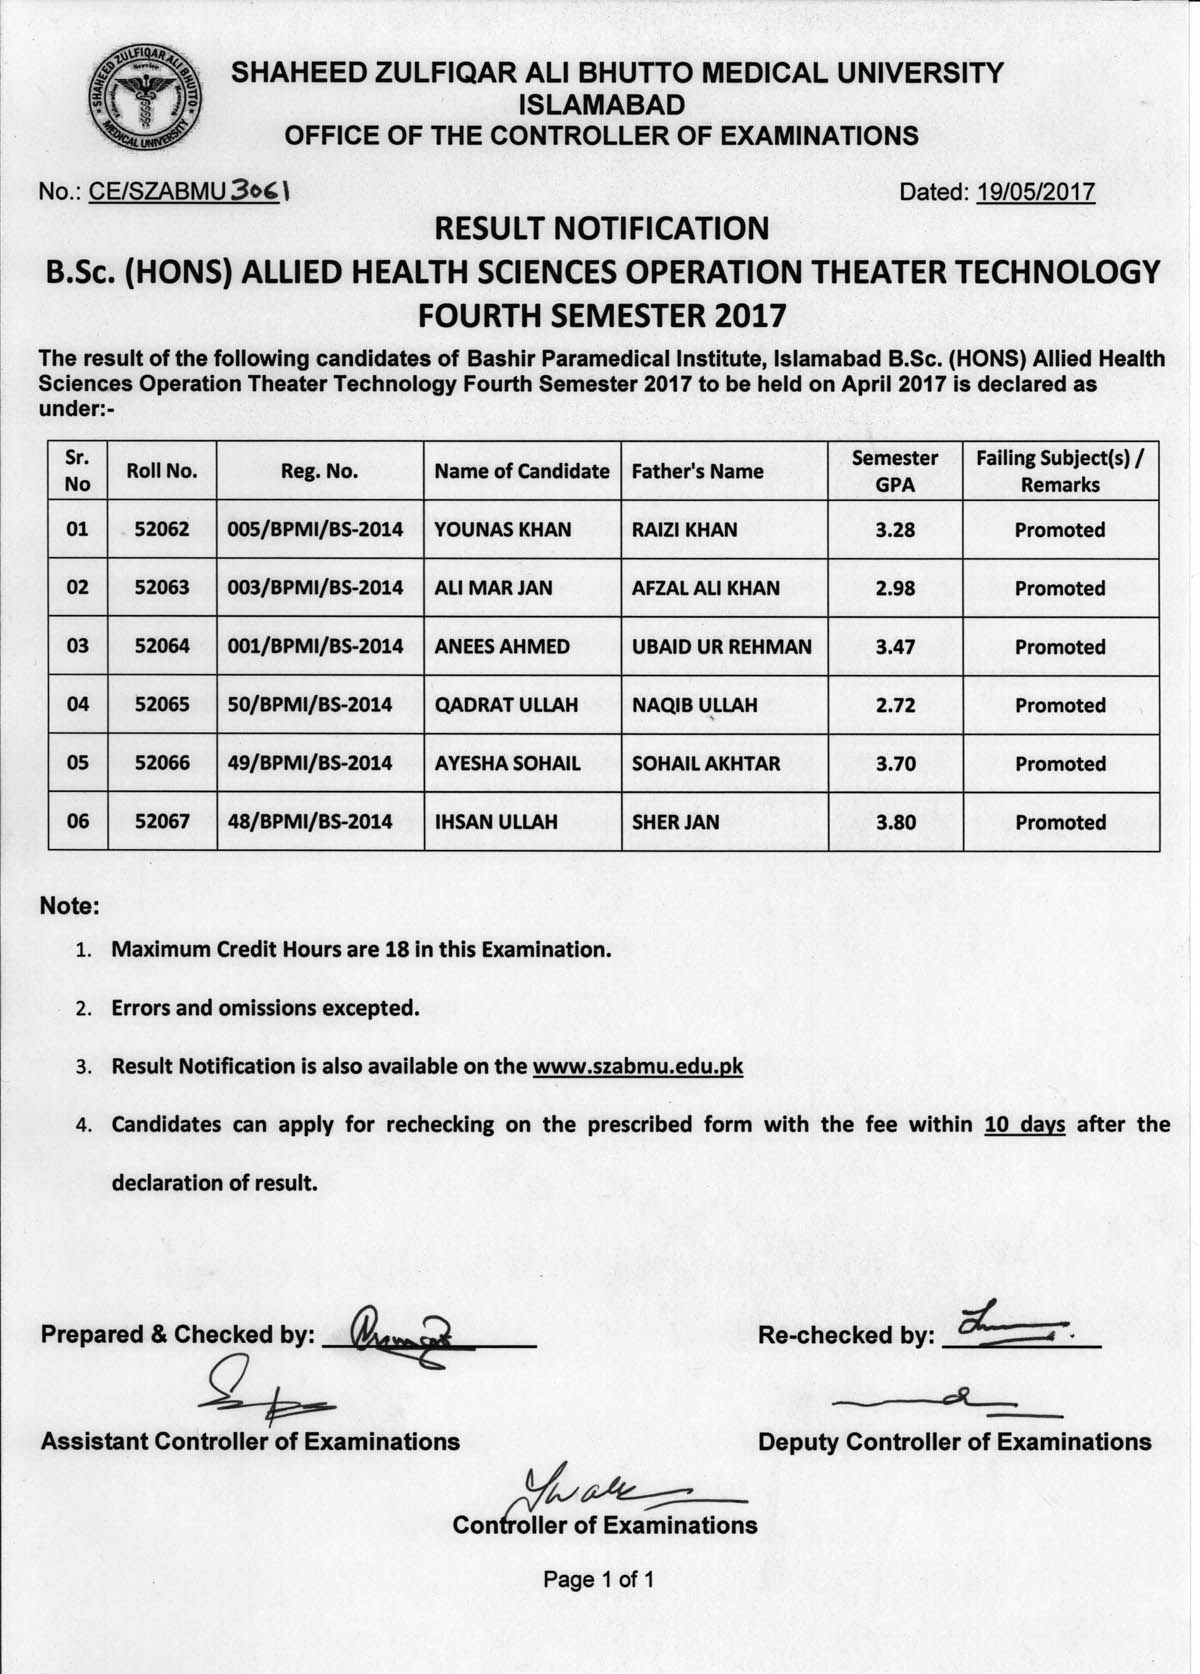 Result Notification - B.Sc. Hons Allied Health Sciences 4th Semester